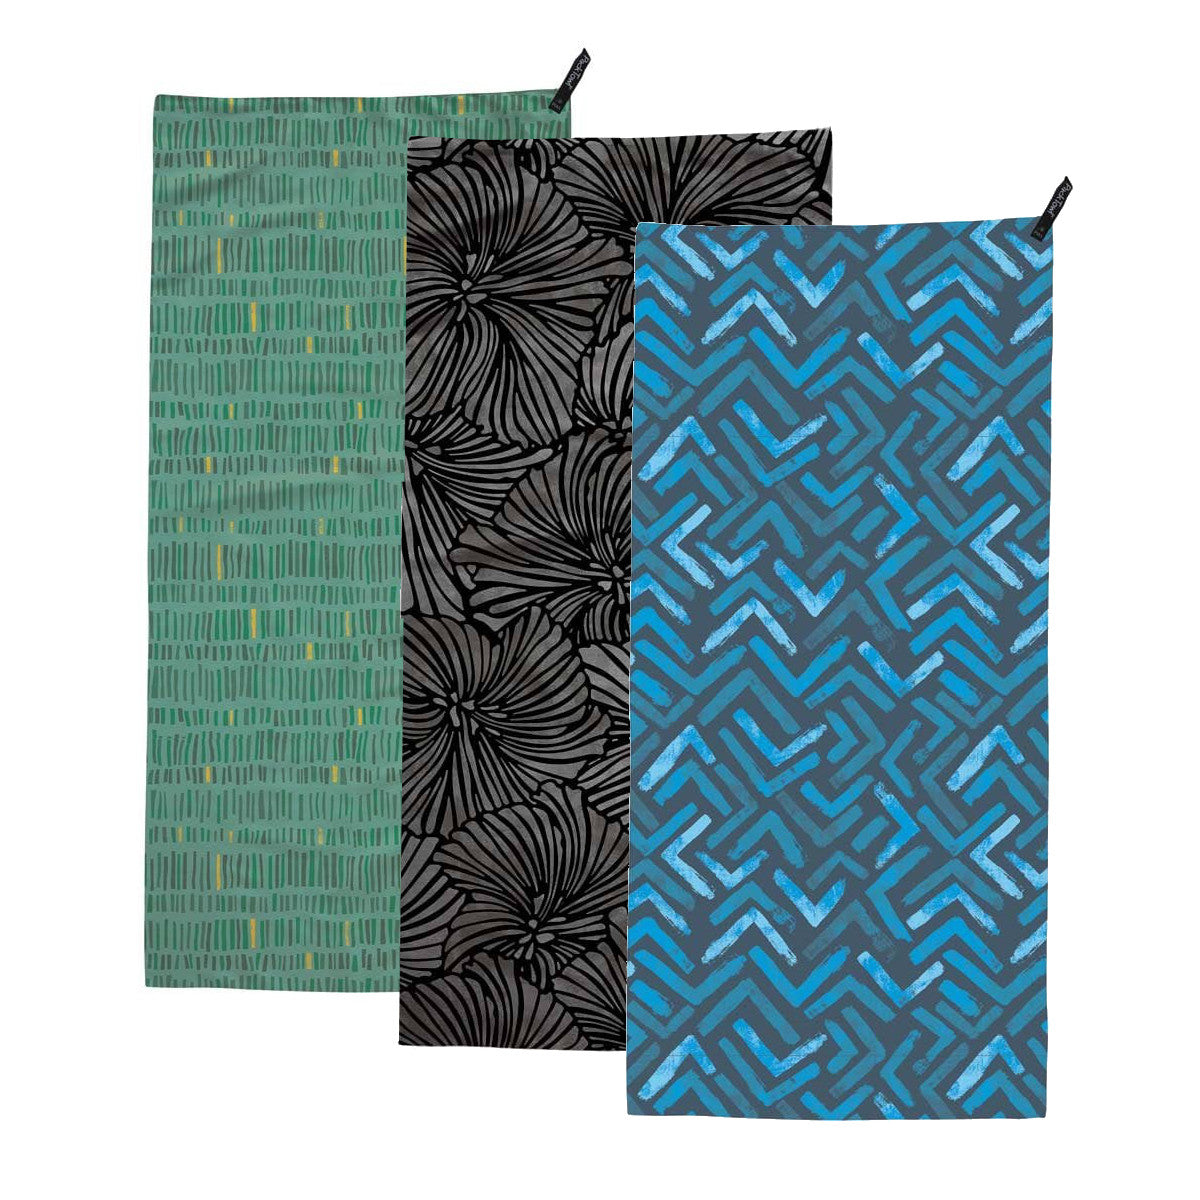 Packtowl UltraLite (Hand) showing 3 towels with green,black and blue colours and pattern